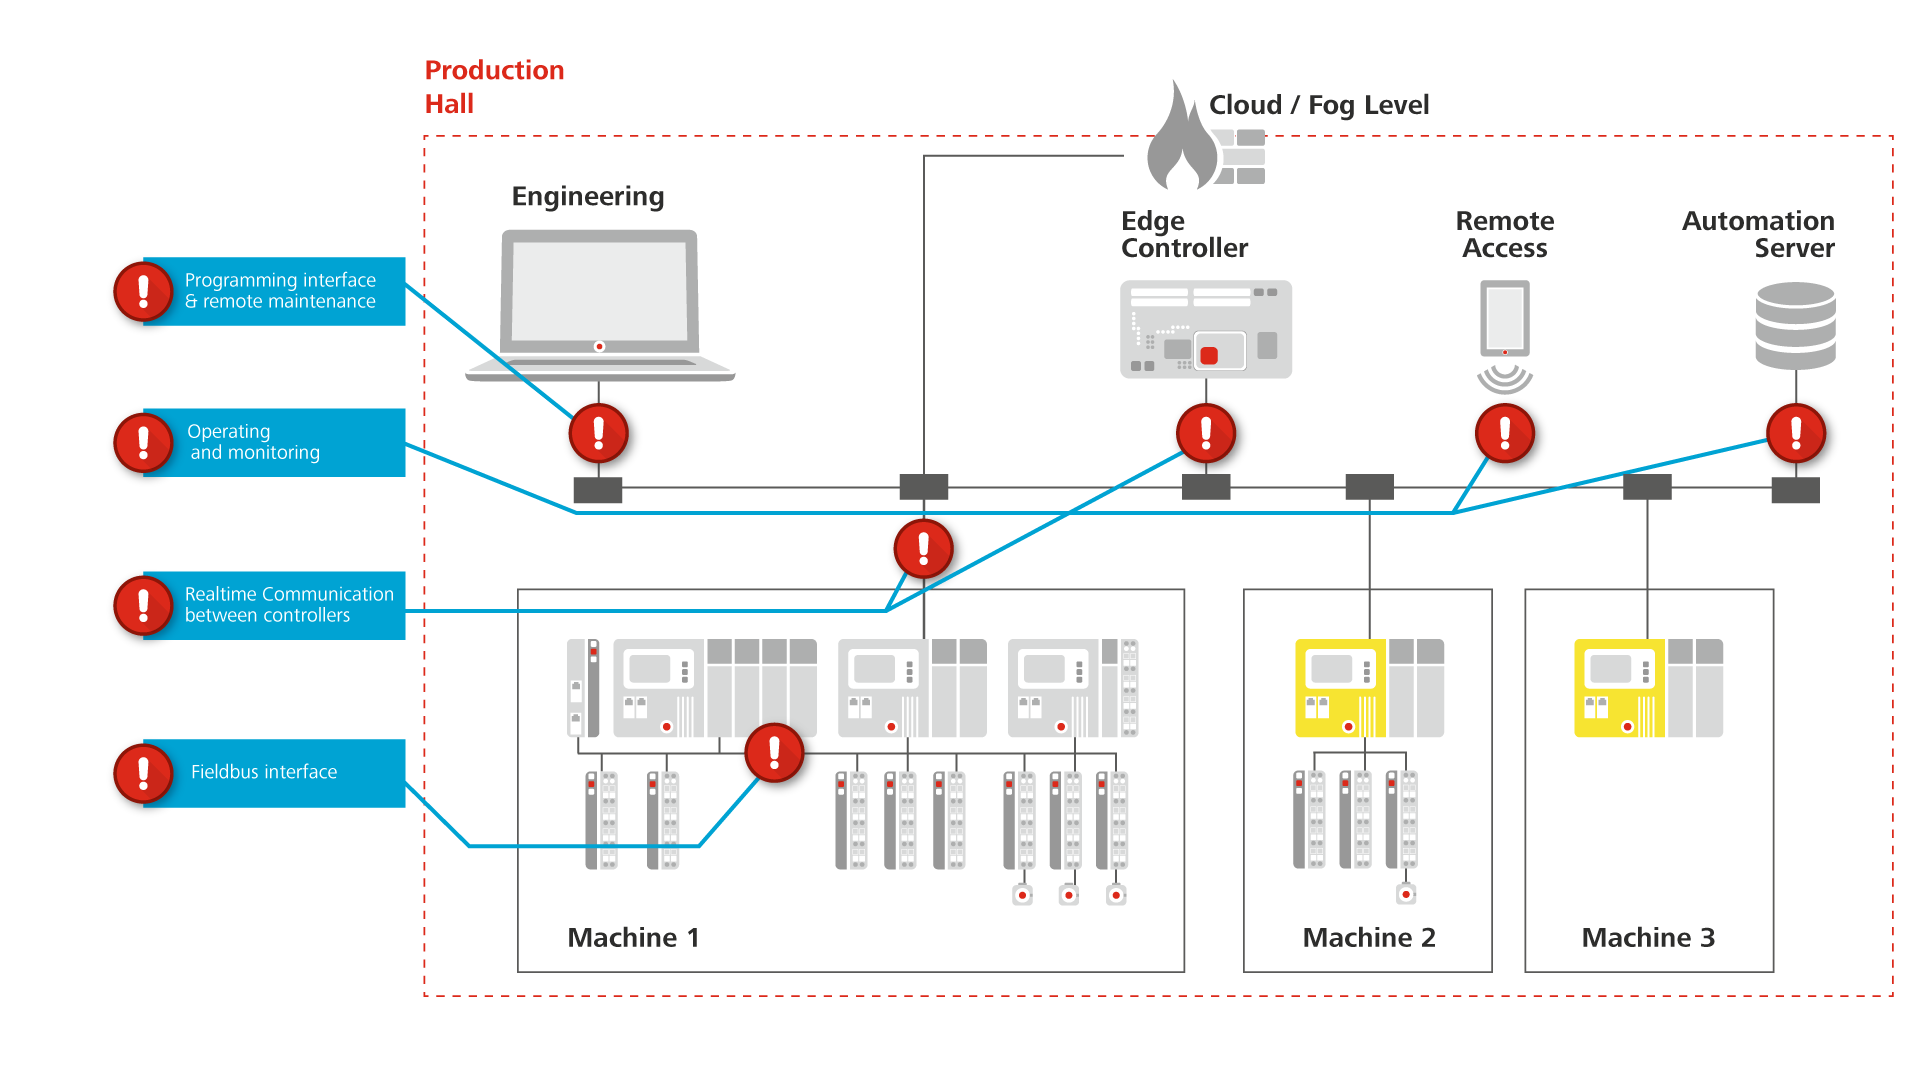 Codesys Security Networkdiagramtypicalserverrackdiagrampng However Numerous Product Features In Help Reduce The Dangers Of Typical Attack Scenarios Or Even Prevent Them Altogether